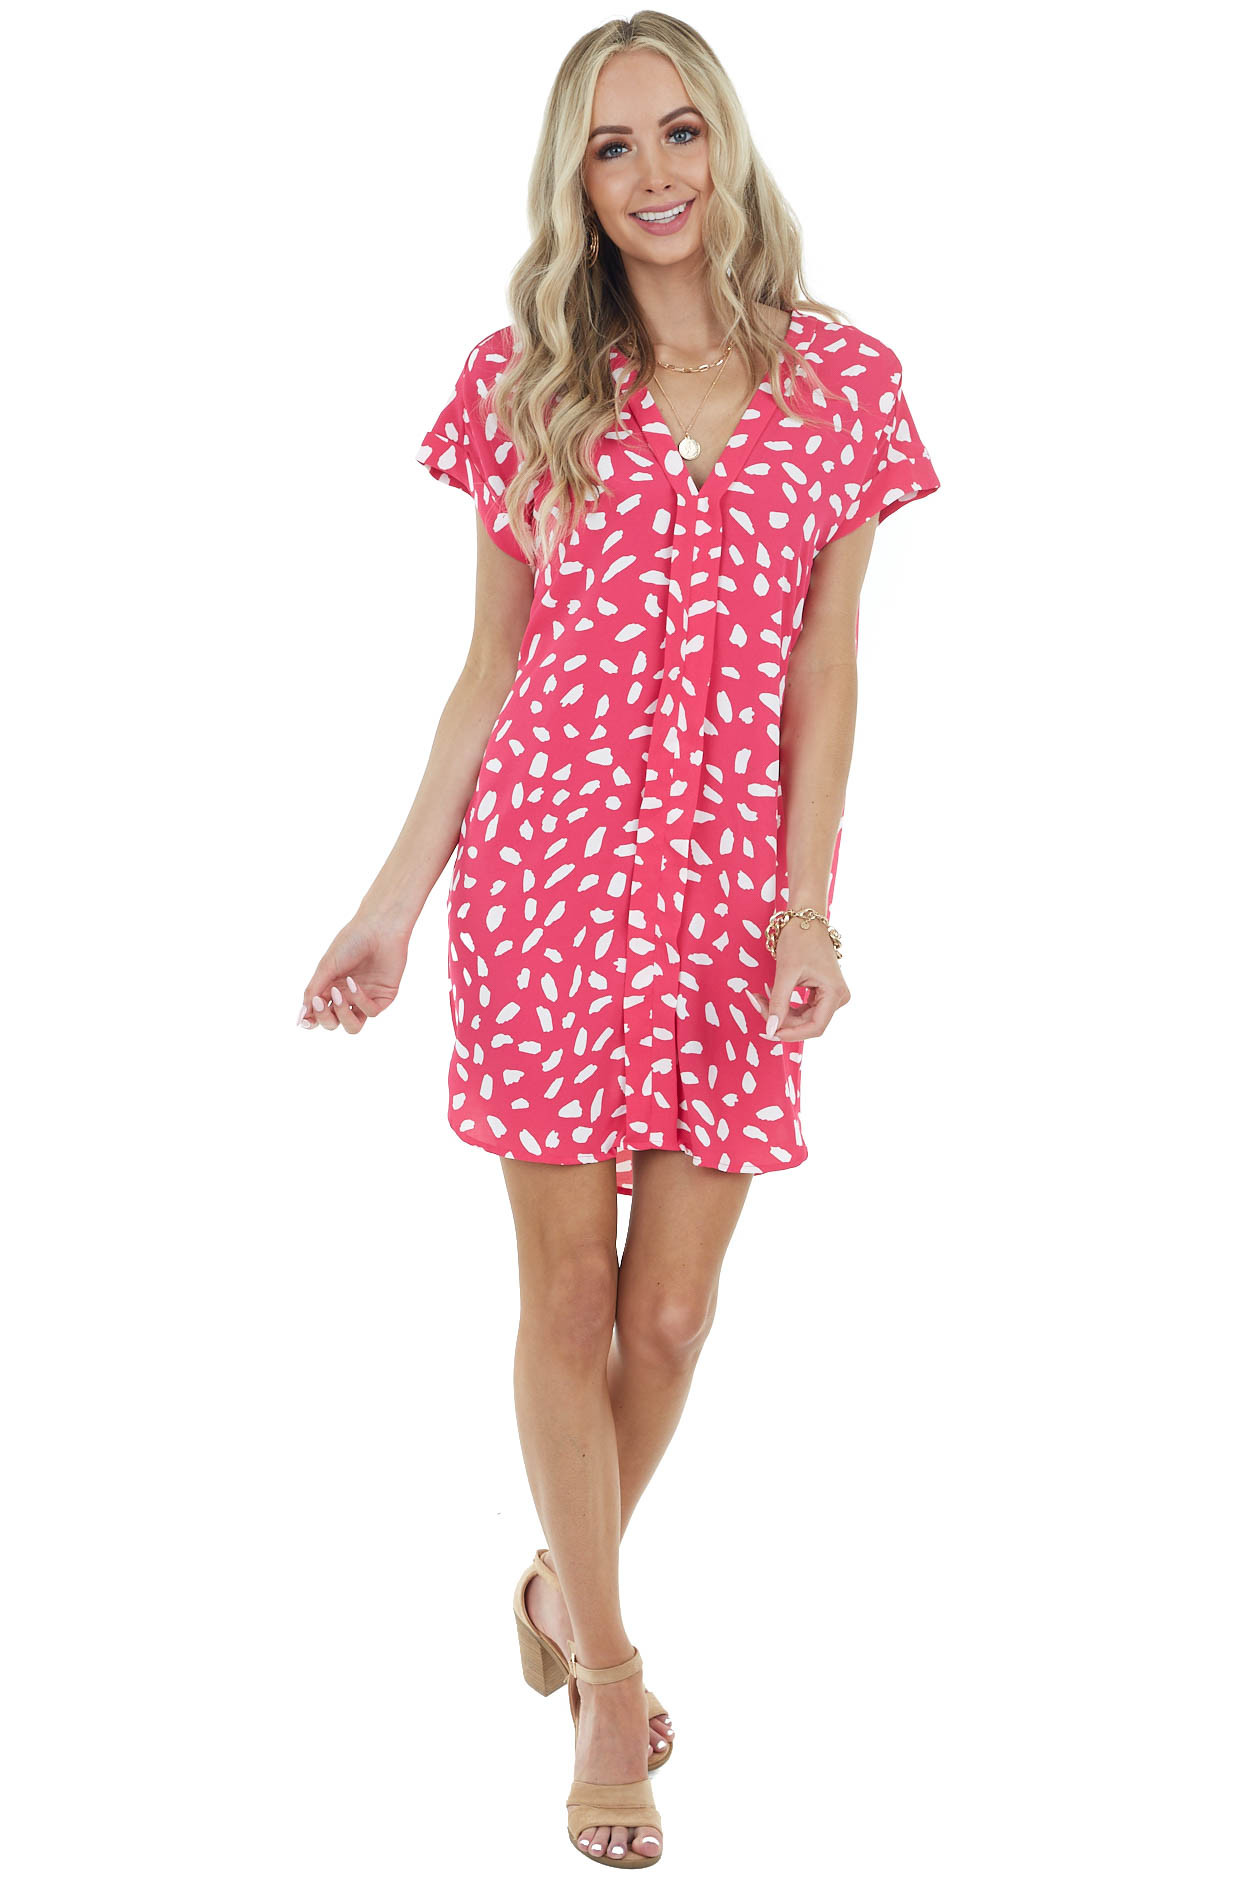 Hot Pink Abstract Print Short Woven Dress with Short Sleeves